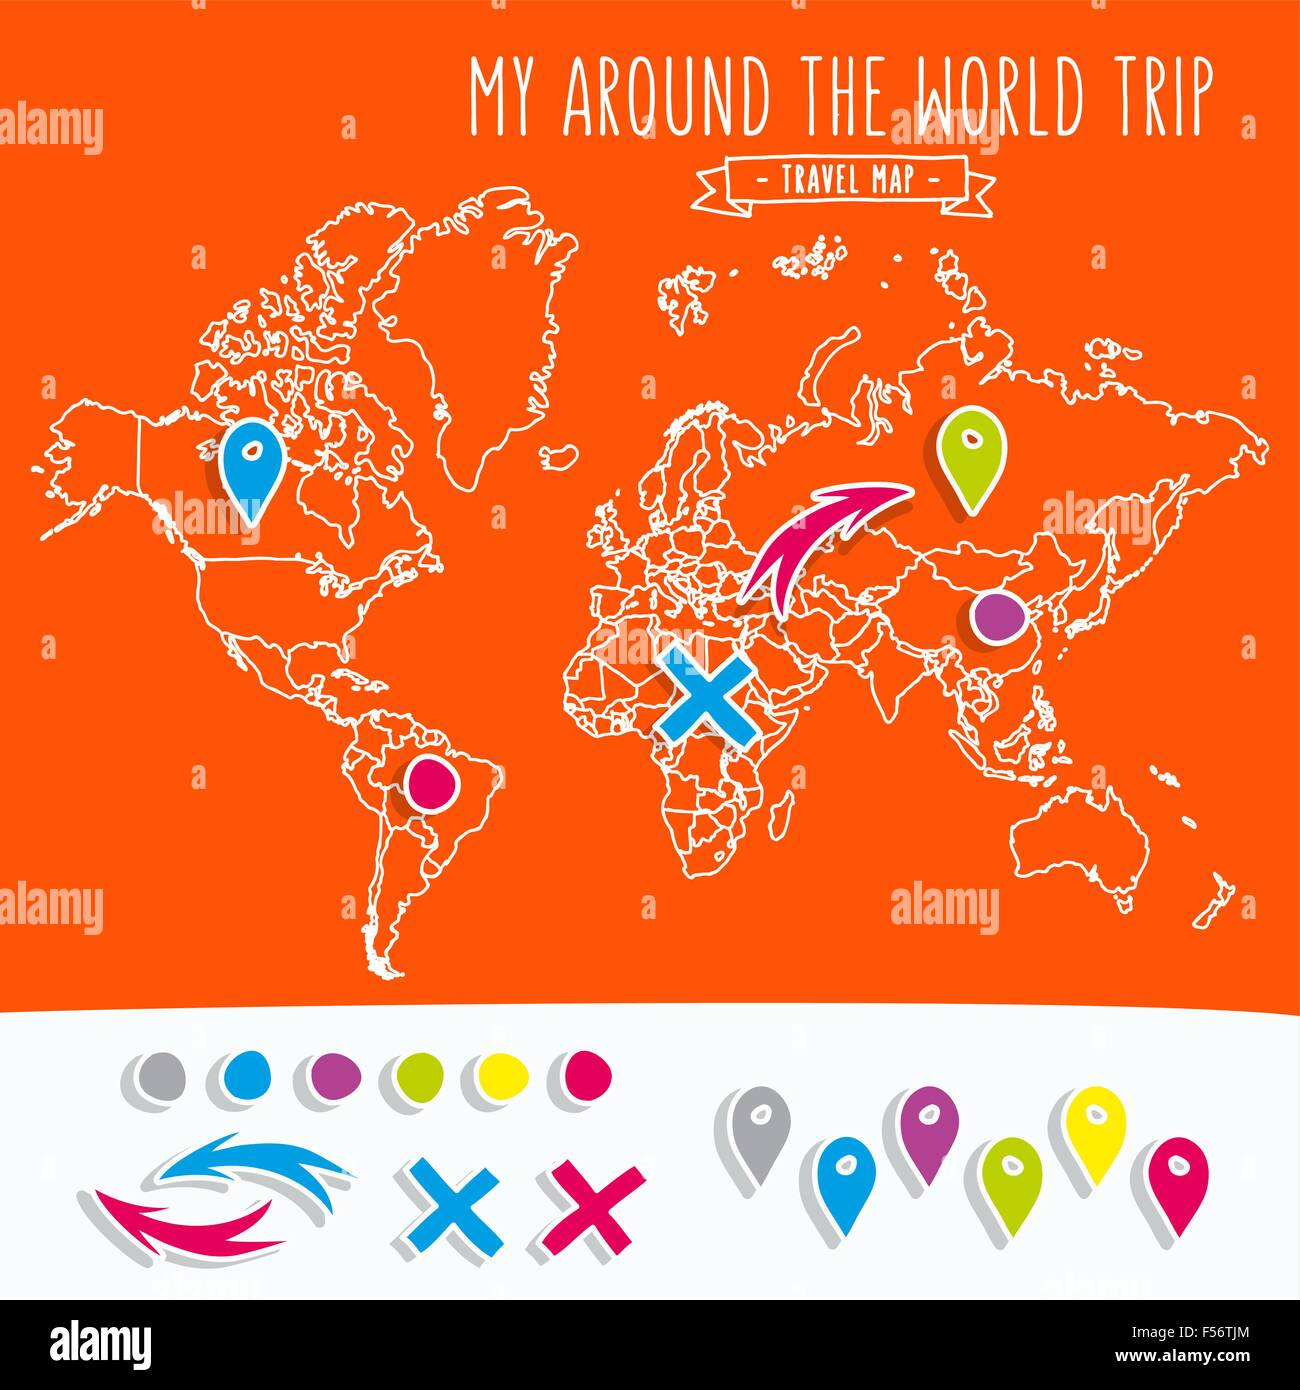 Hand drawn world map with pins and arrows vector design cartoon hand drawn world map with pins and arrows vector design cartoon style atlas illustration travel poster template gumiabroncs Images